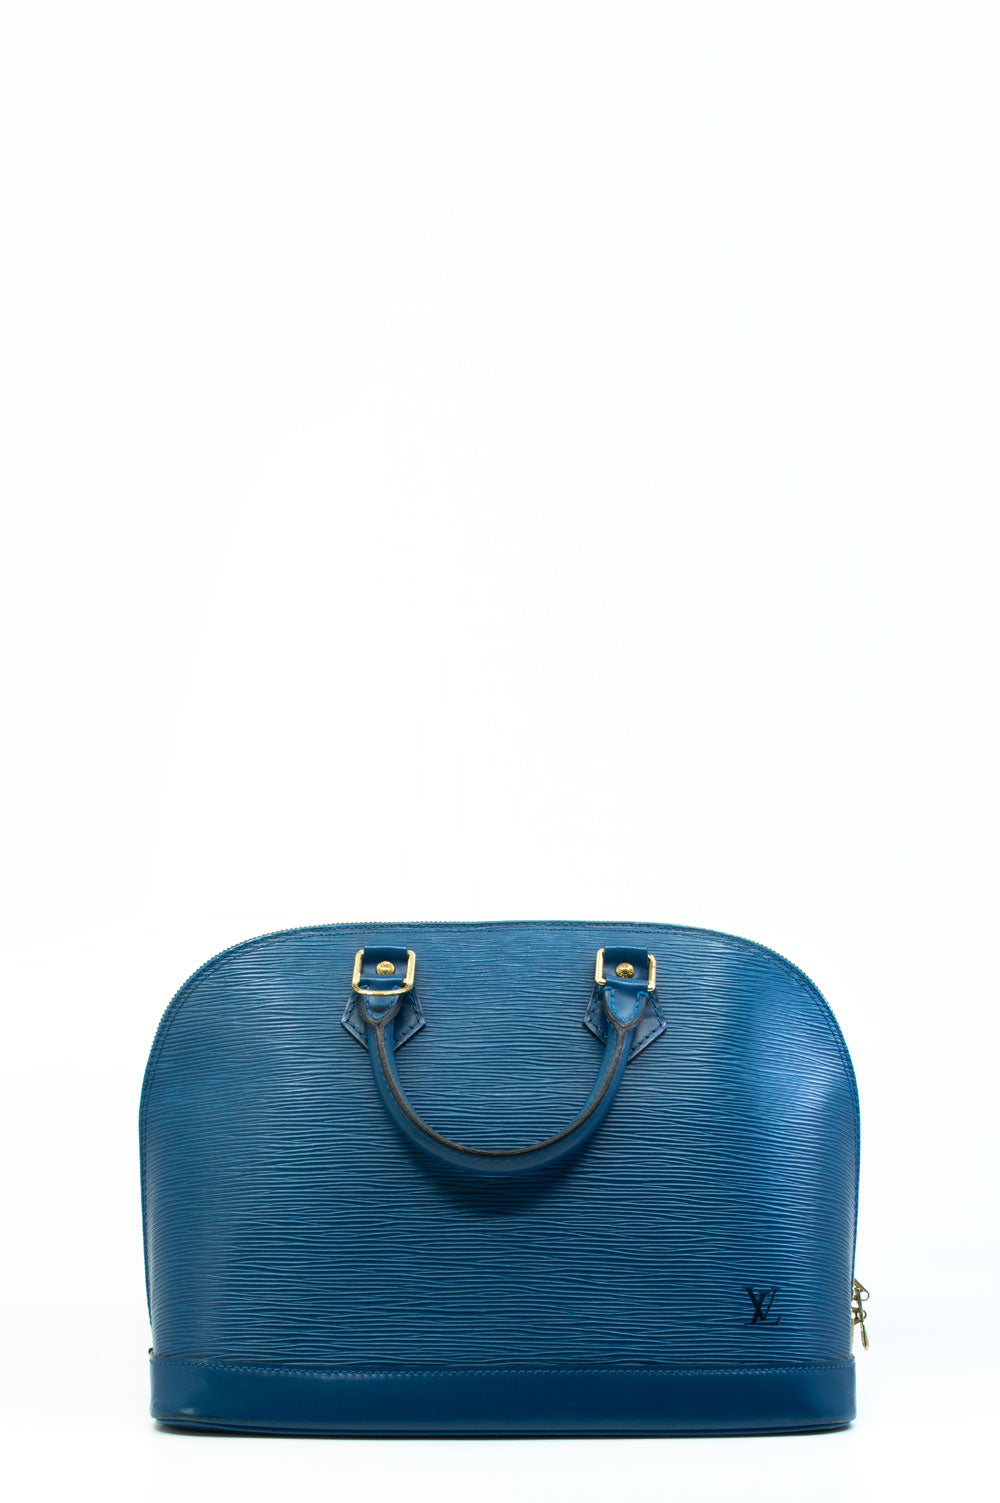 Louis Vuitton Alma PM Tasche in blauen Epi-Leder.